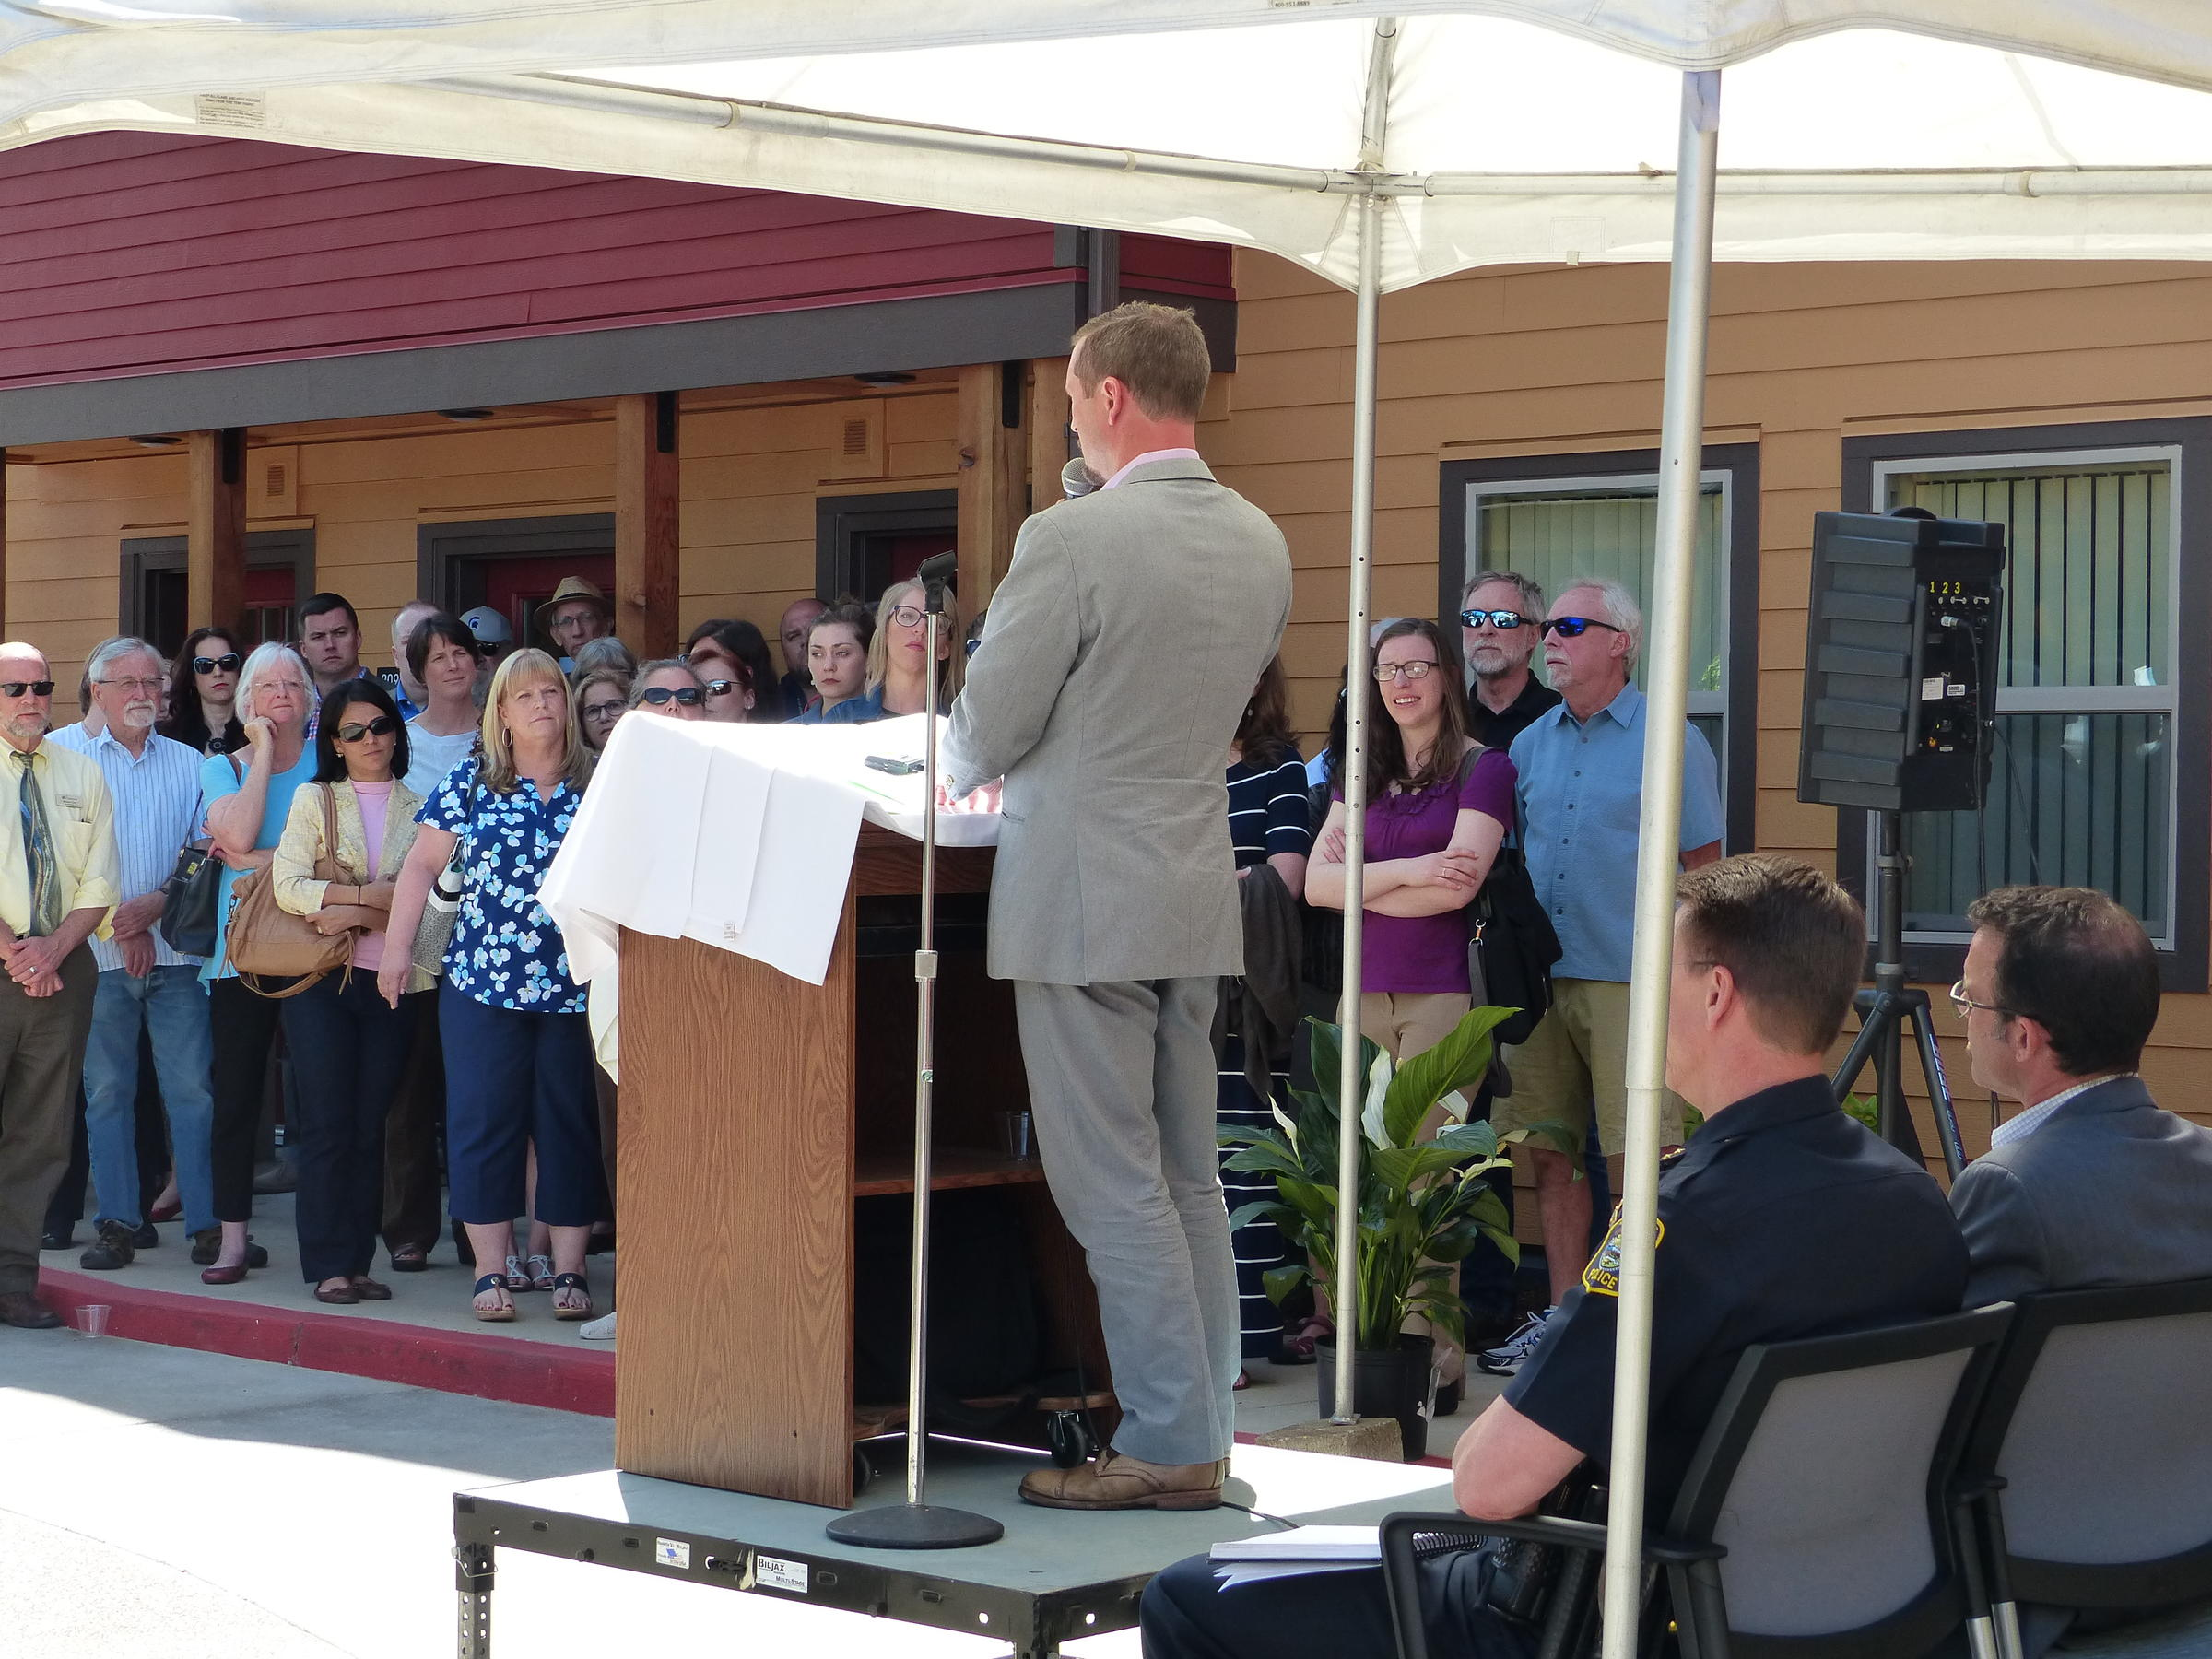 affordable apartment community for ex-cons opens in eugene | klcc